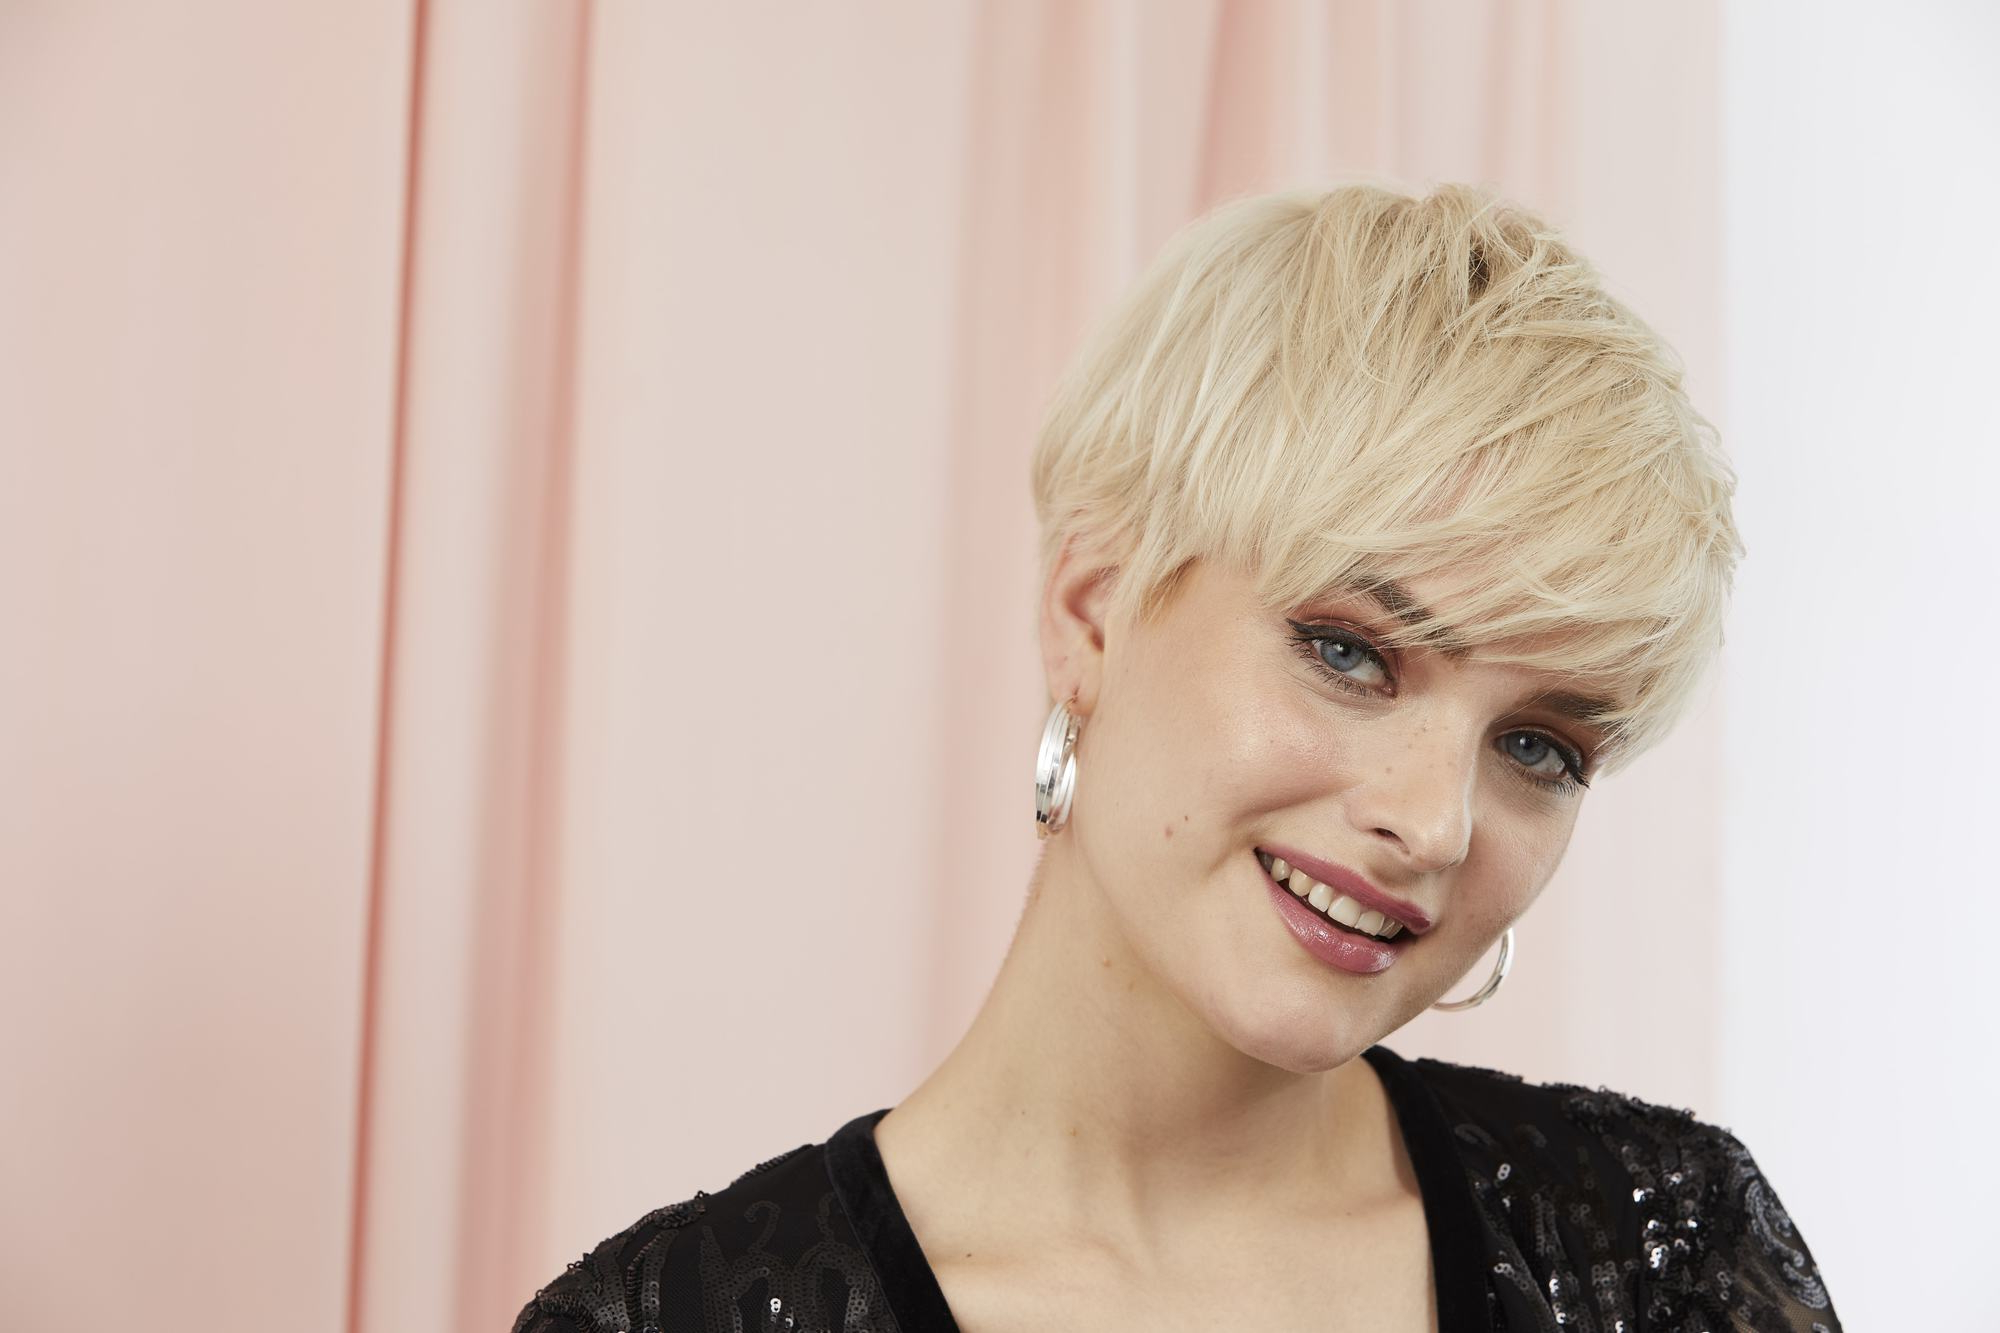 35 Best Pixie Cut Hairstyles For 2019 You Will Want To See Pertaining To Straight Long Shaggy Pixie Haircuts (View 7 of 20)